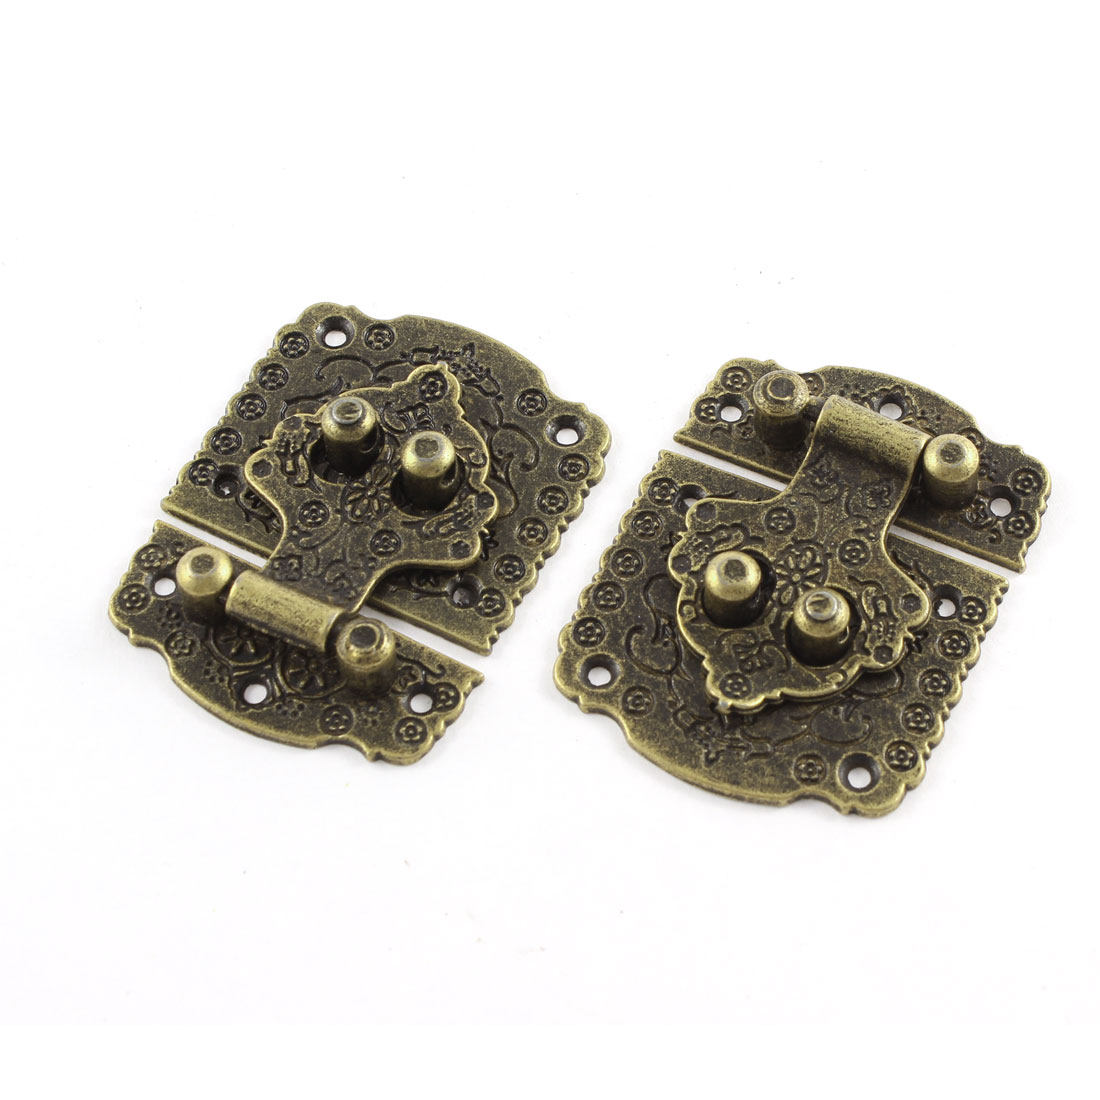 53mmx40mm Box Suitcase Retro Style Flower Pattern Toggle Latch Buckles 2pcs